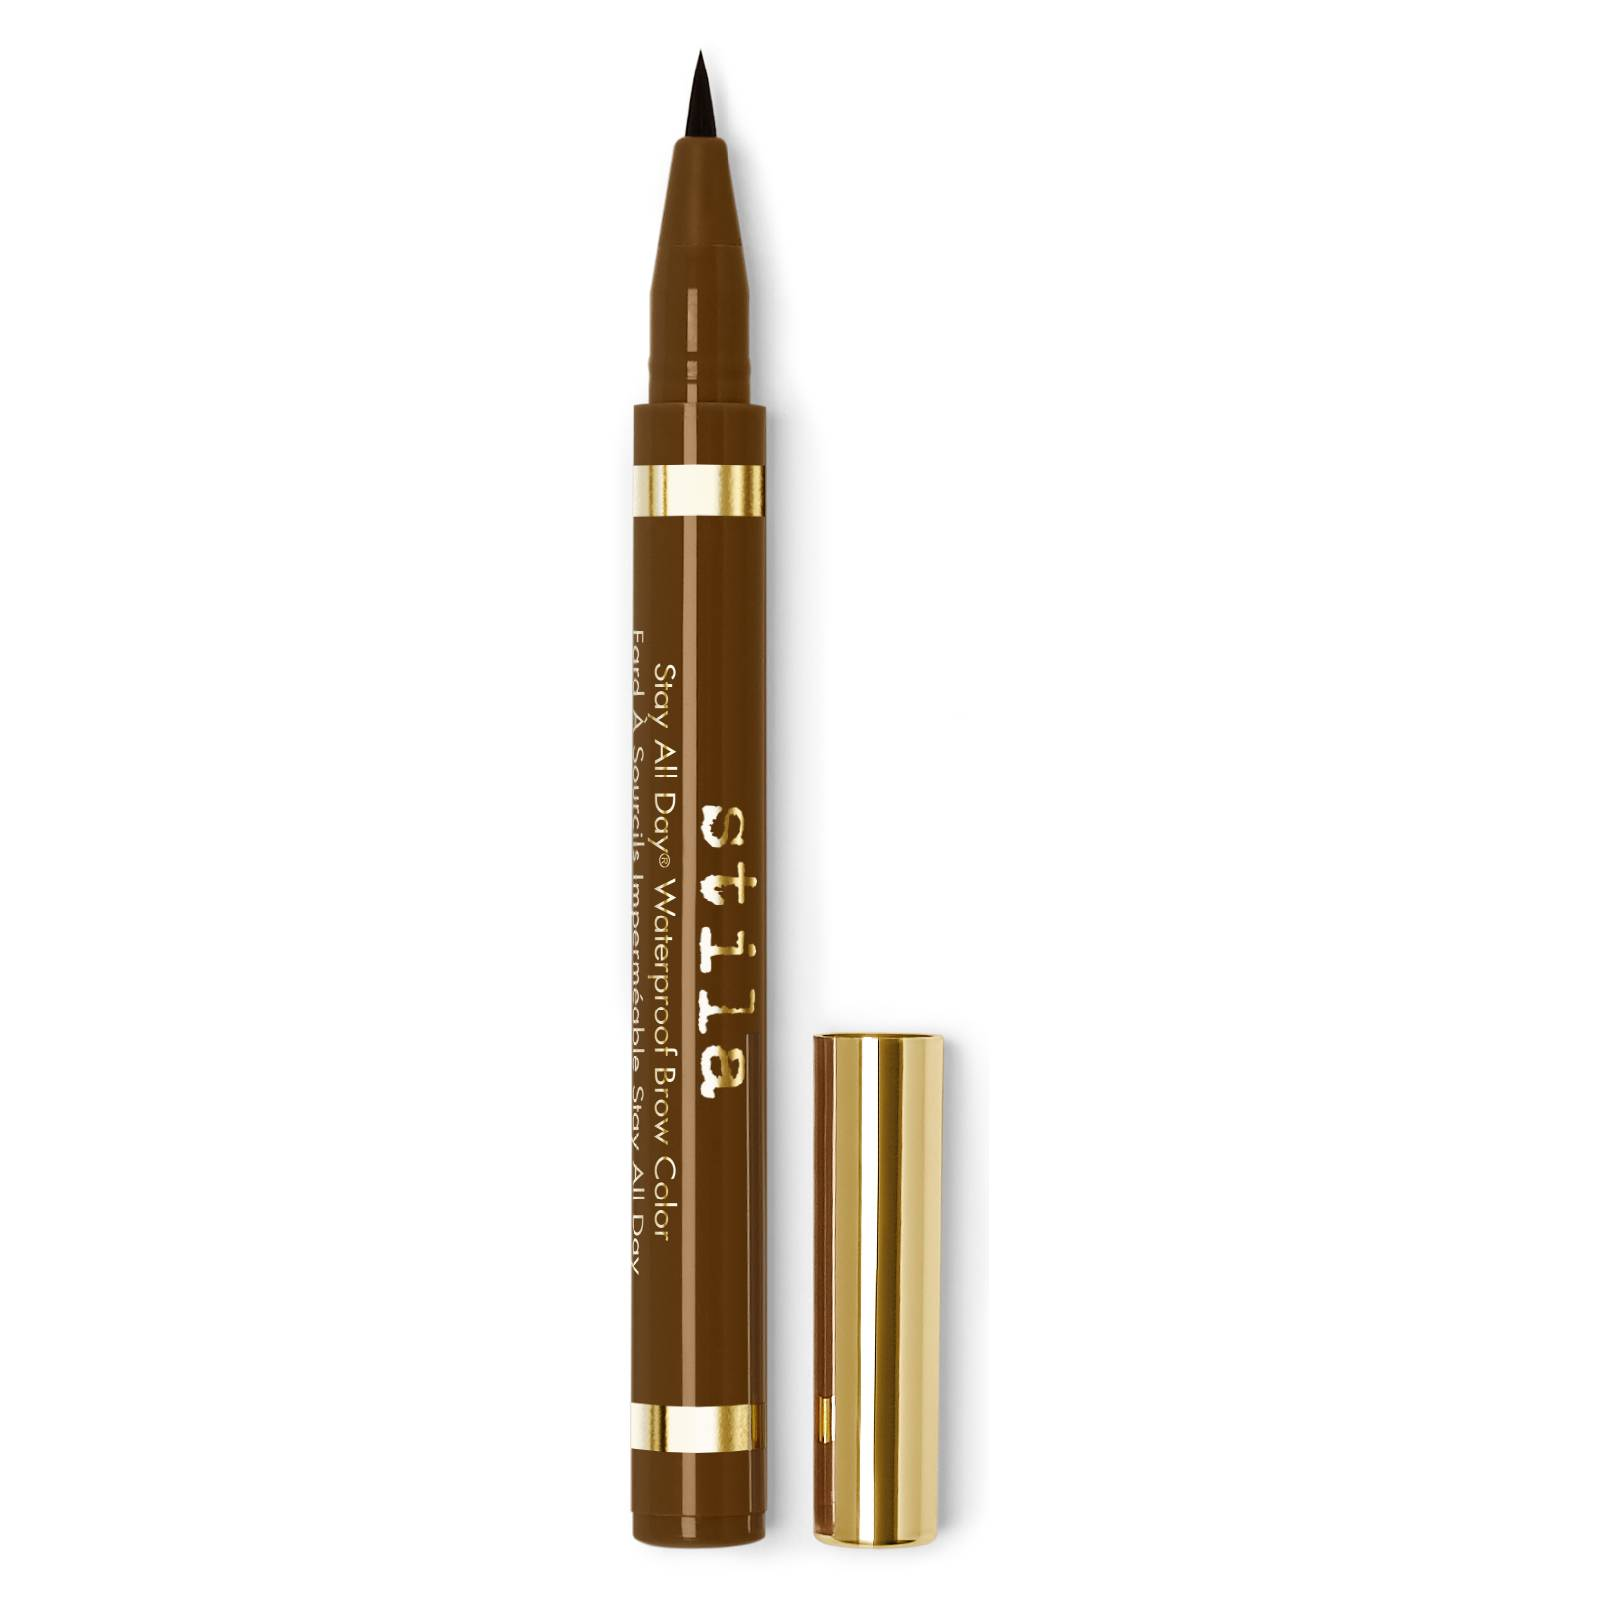 Stila Stay All Day® Waterproof Brow Colour 6ml (Various Shades) - Medium Warm